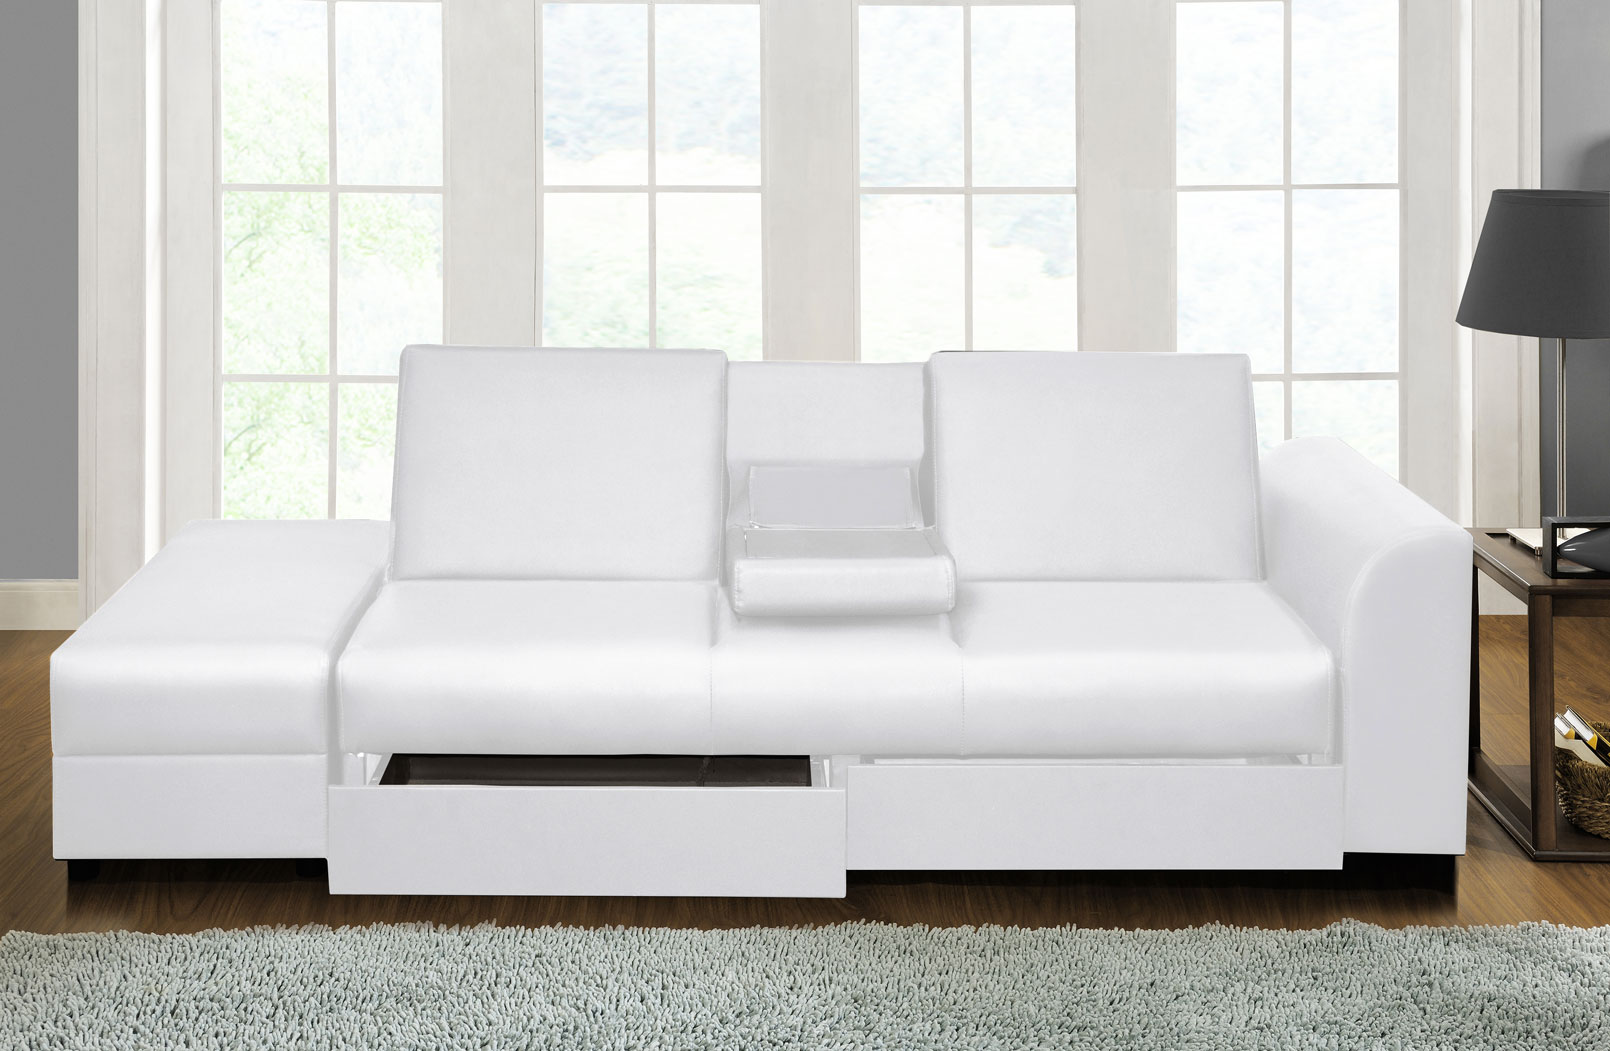 folding bed sofa set designer slipcovers cairo faux leather couch